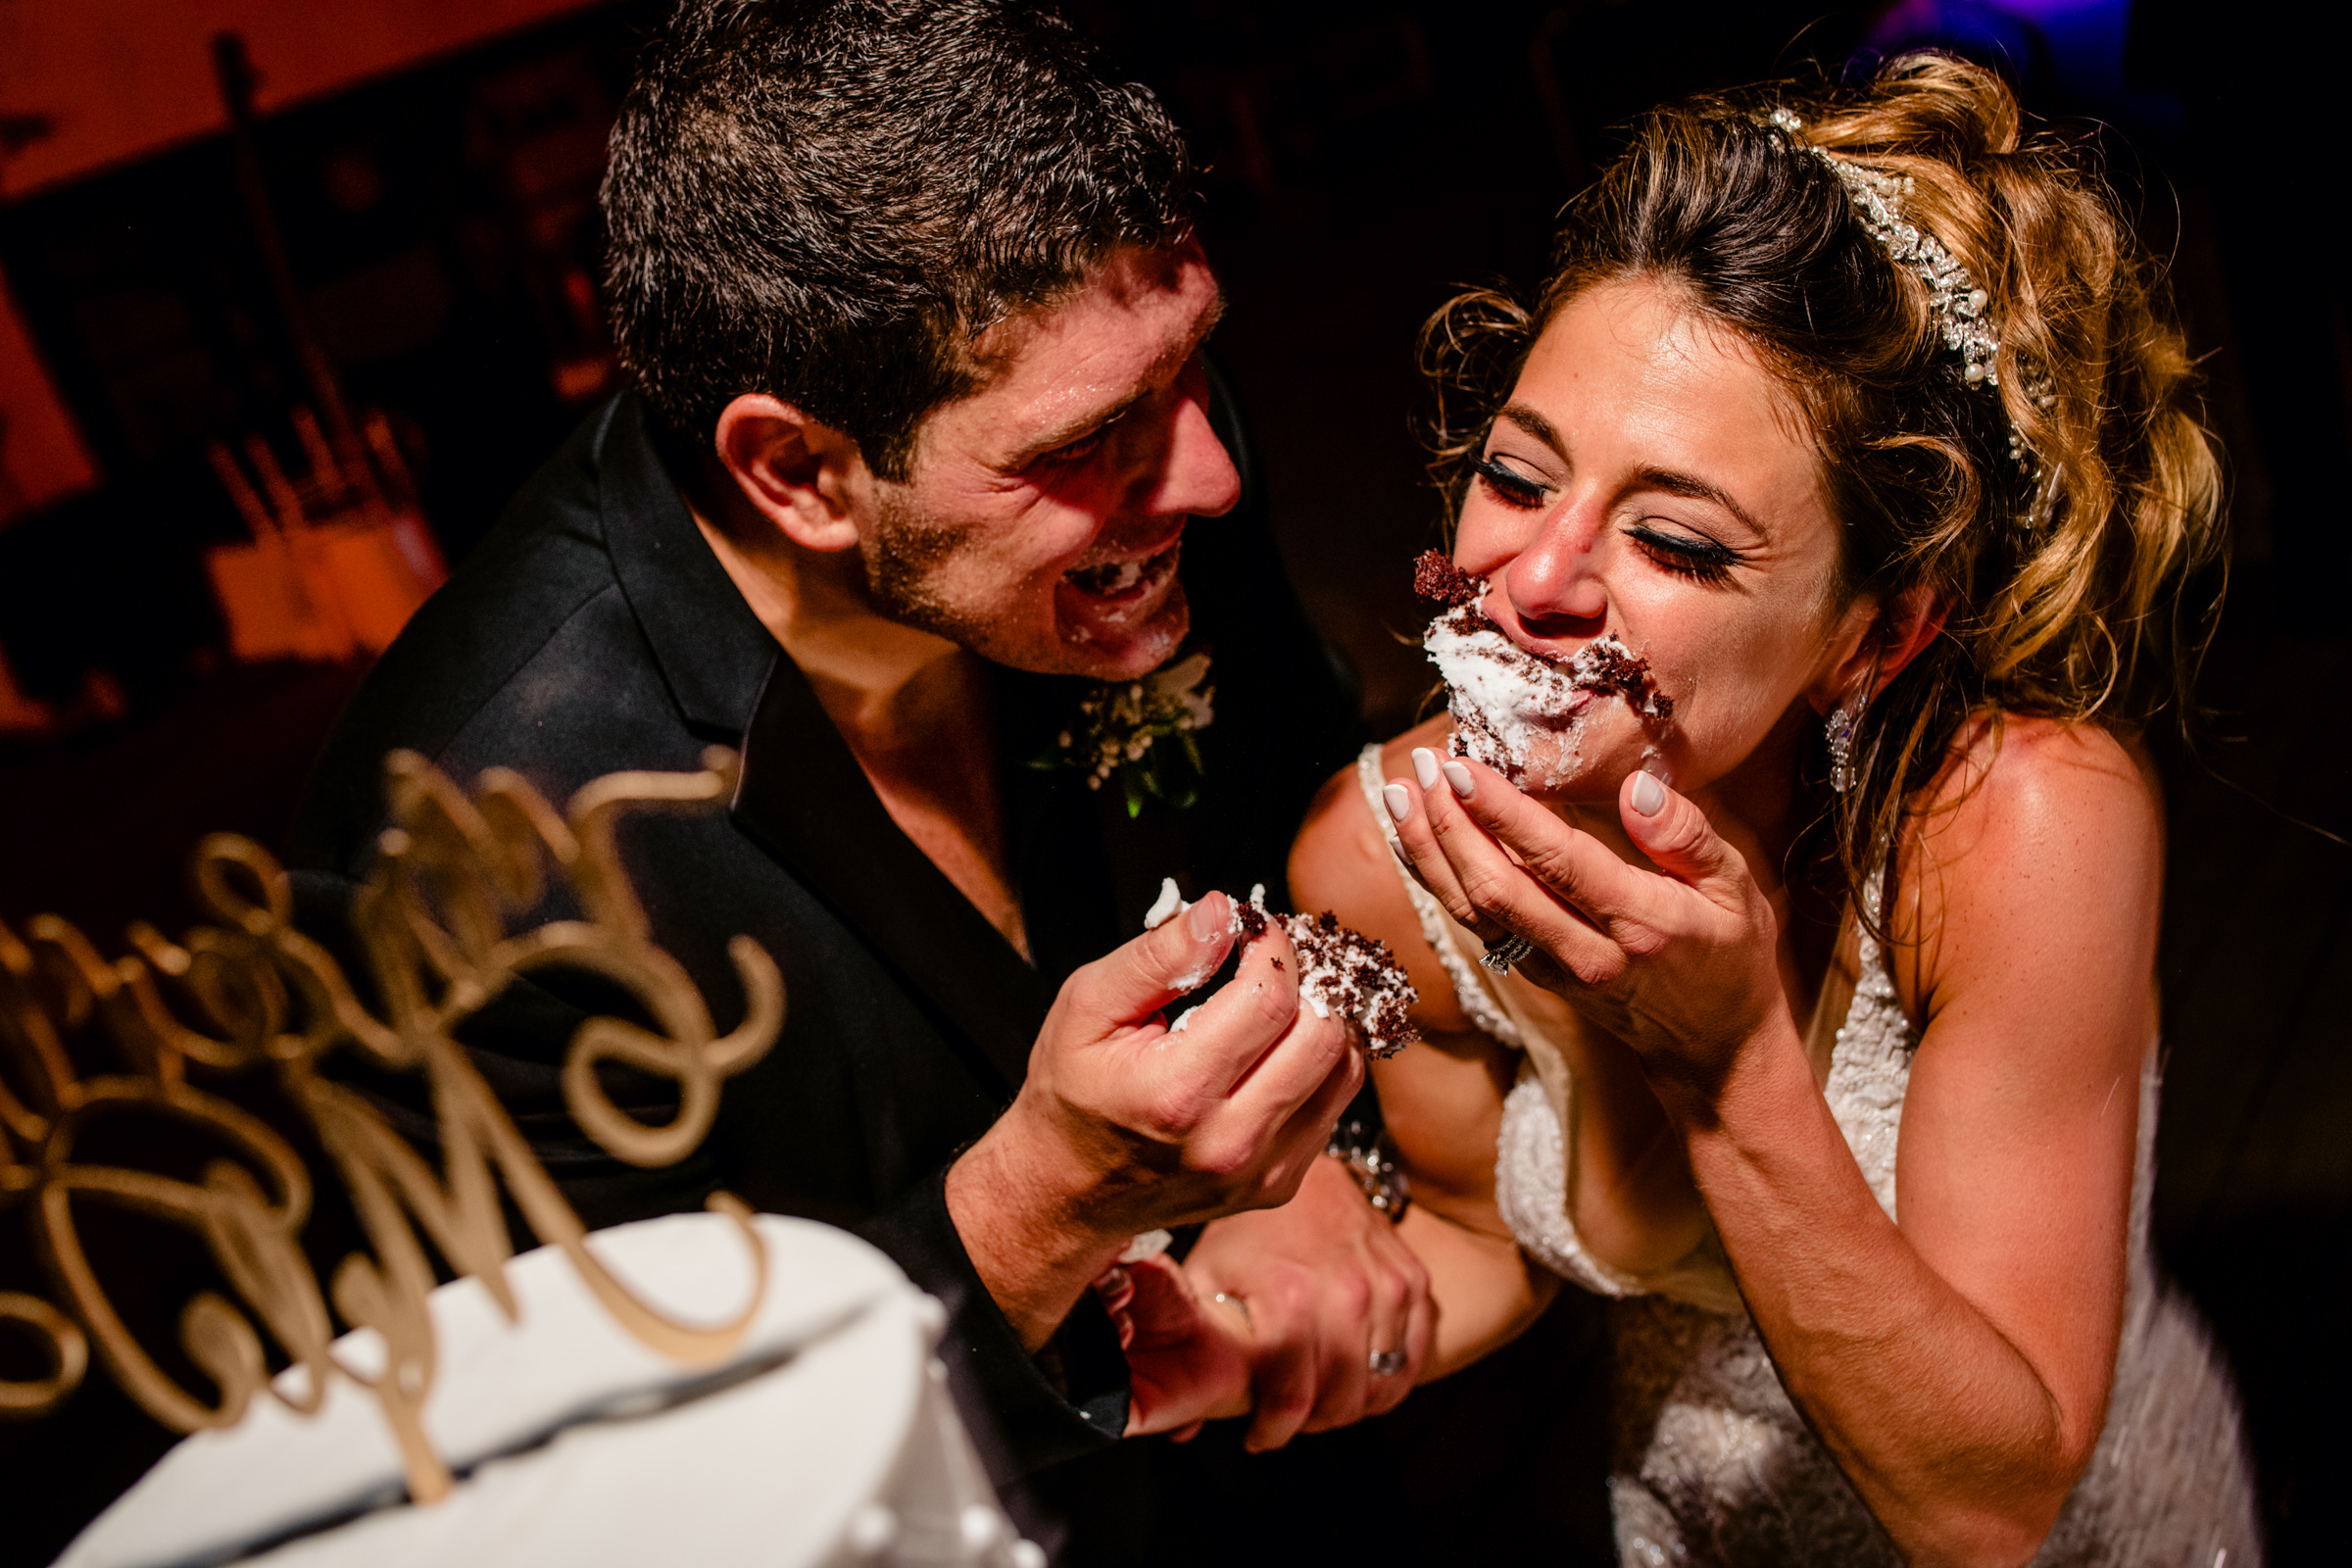 Smashing the cake big time - photo by Freas Photography - North Carolina